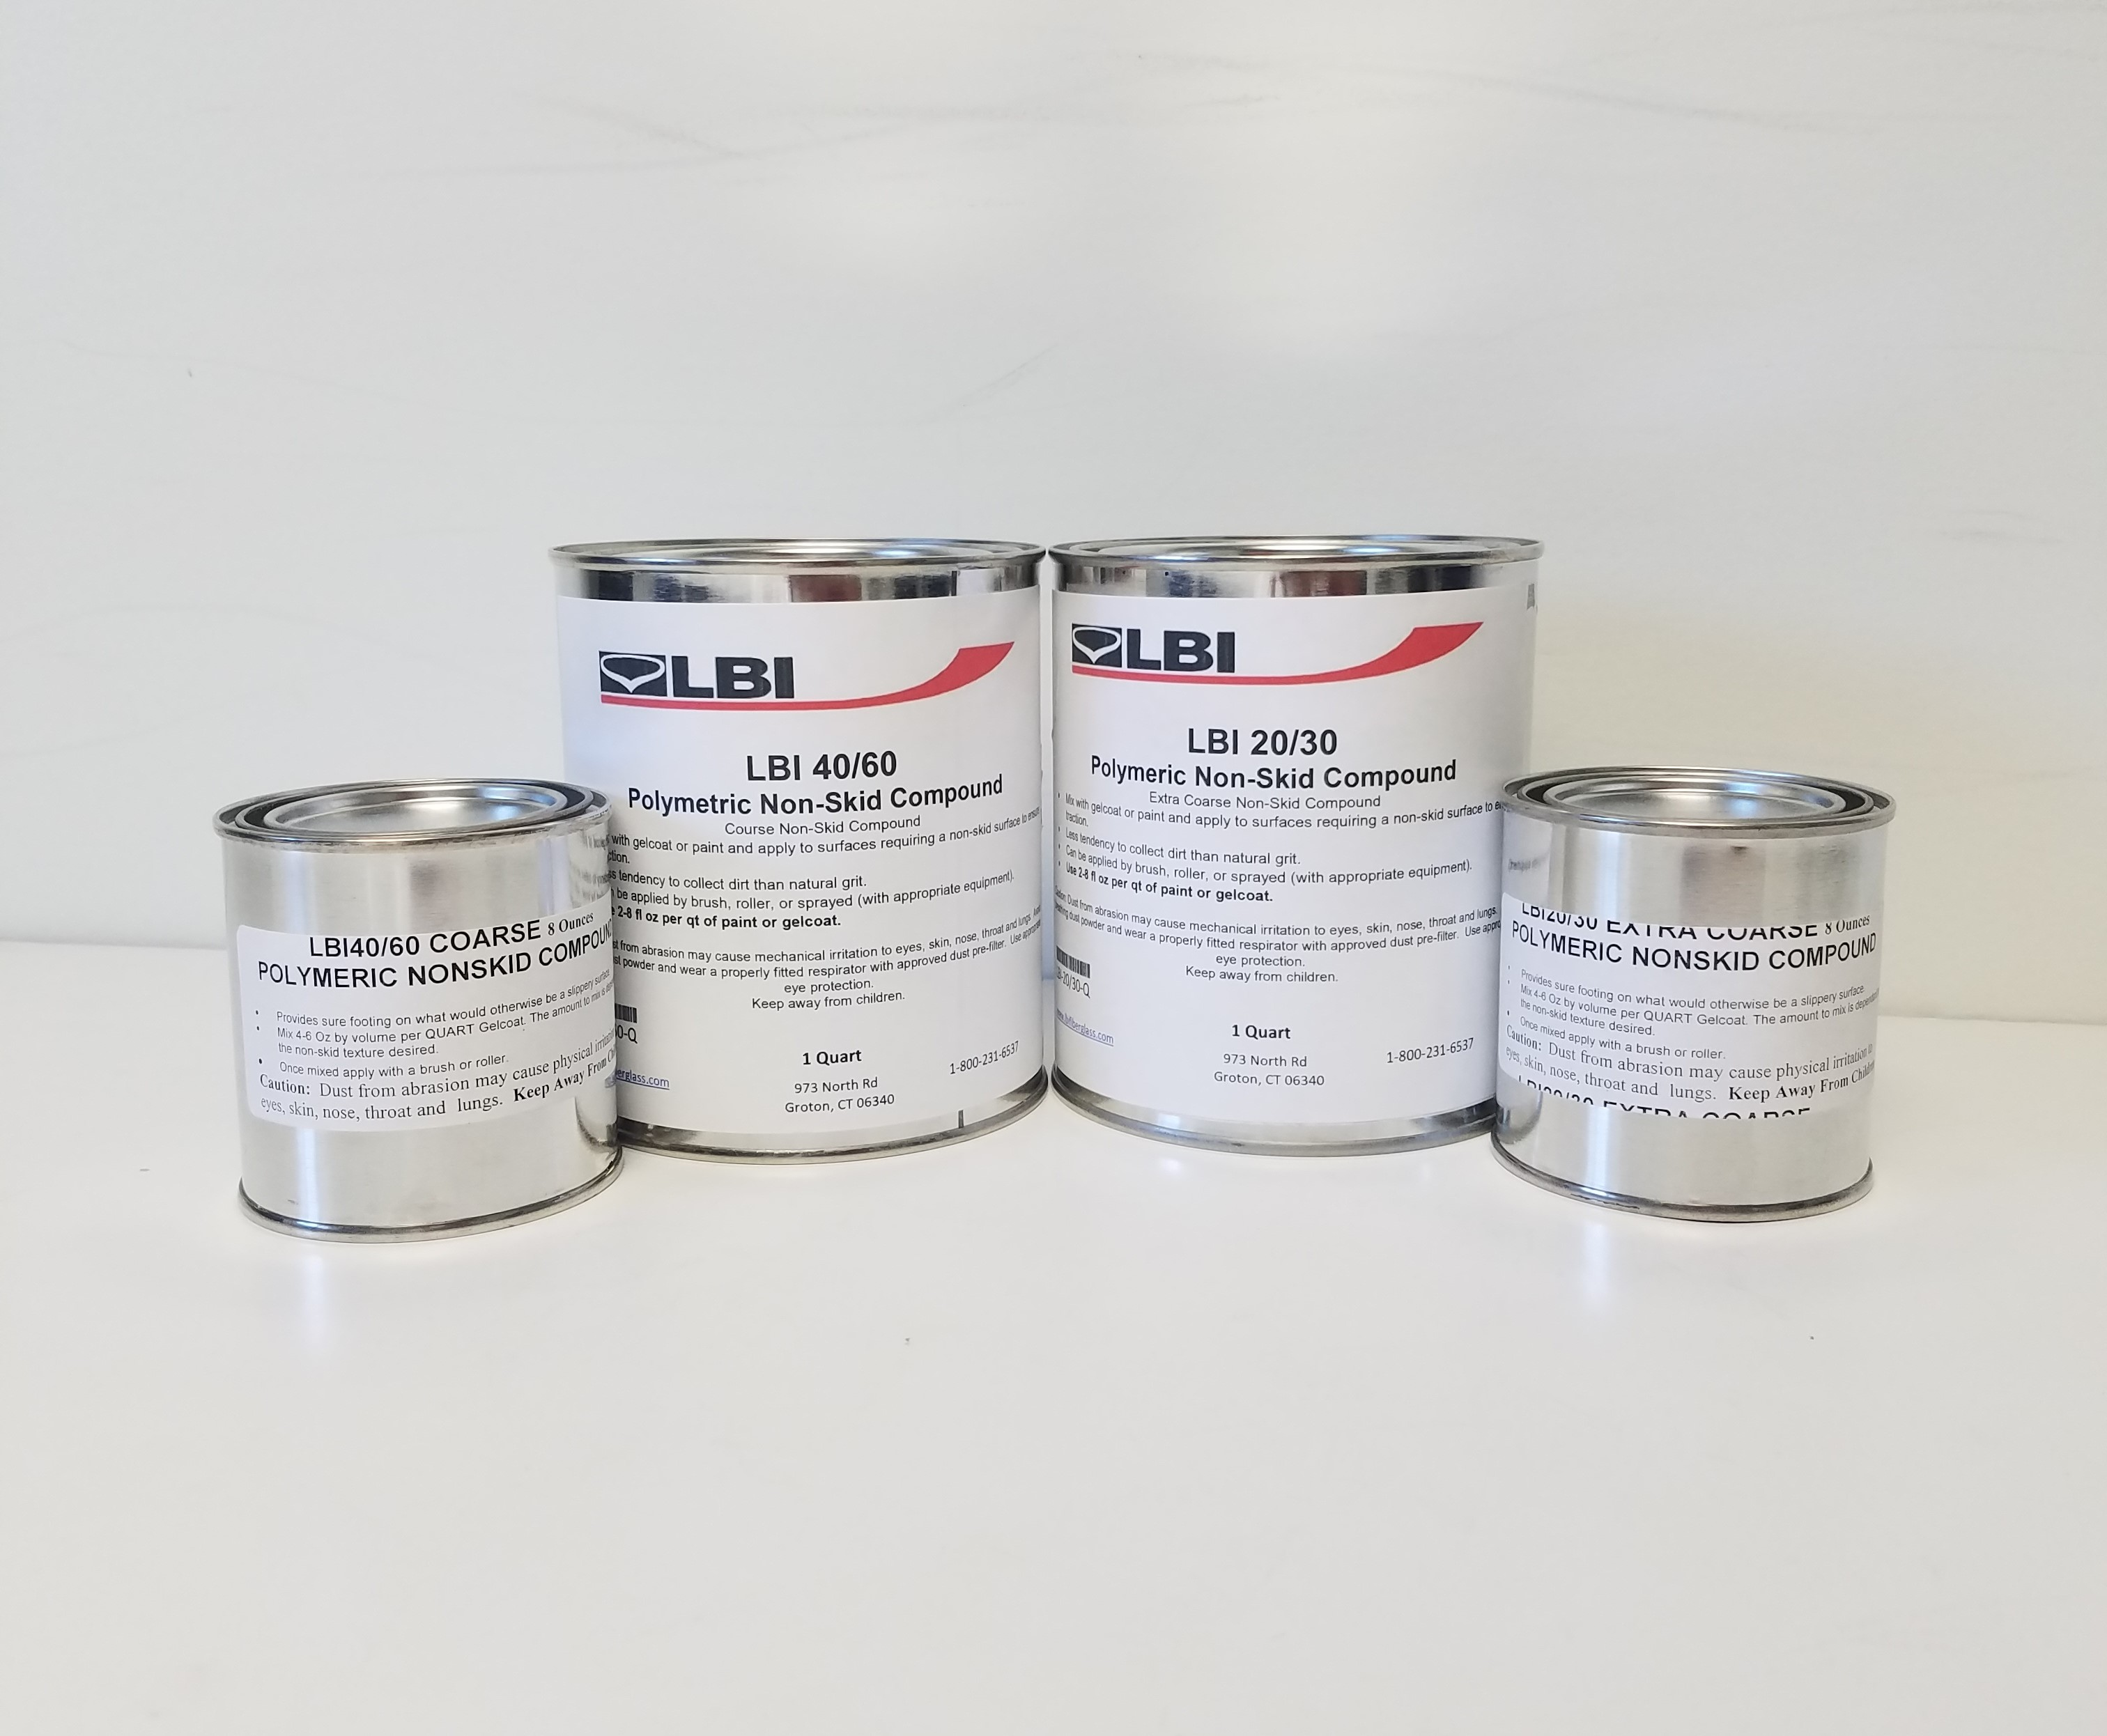 Polymeric Non-Skid Compound